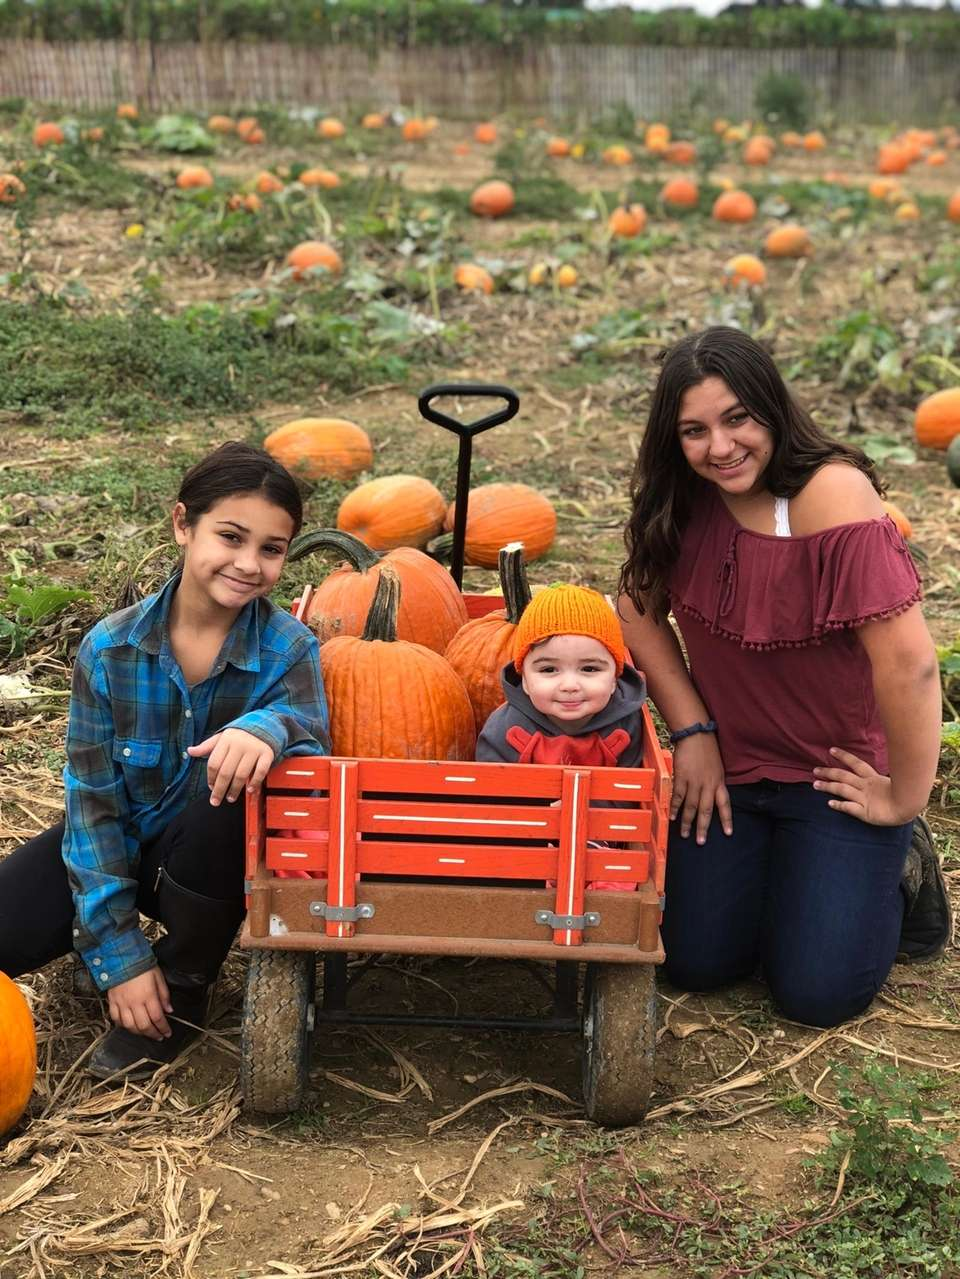 Our lil cousin?s 1st trip pumpkin picking!